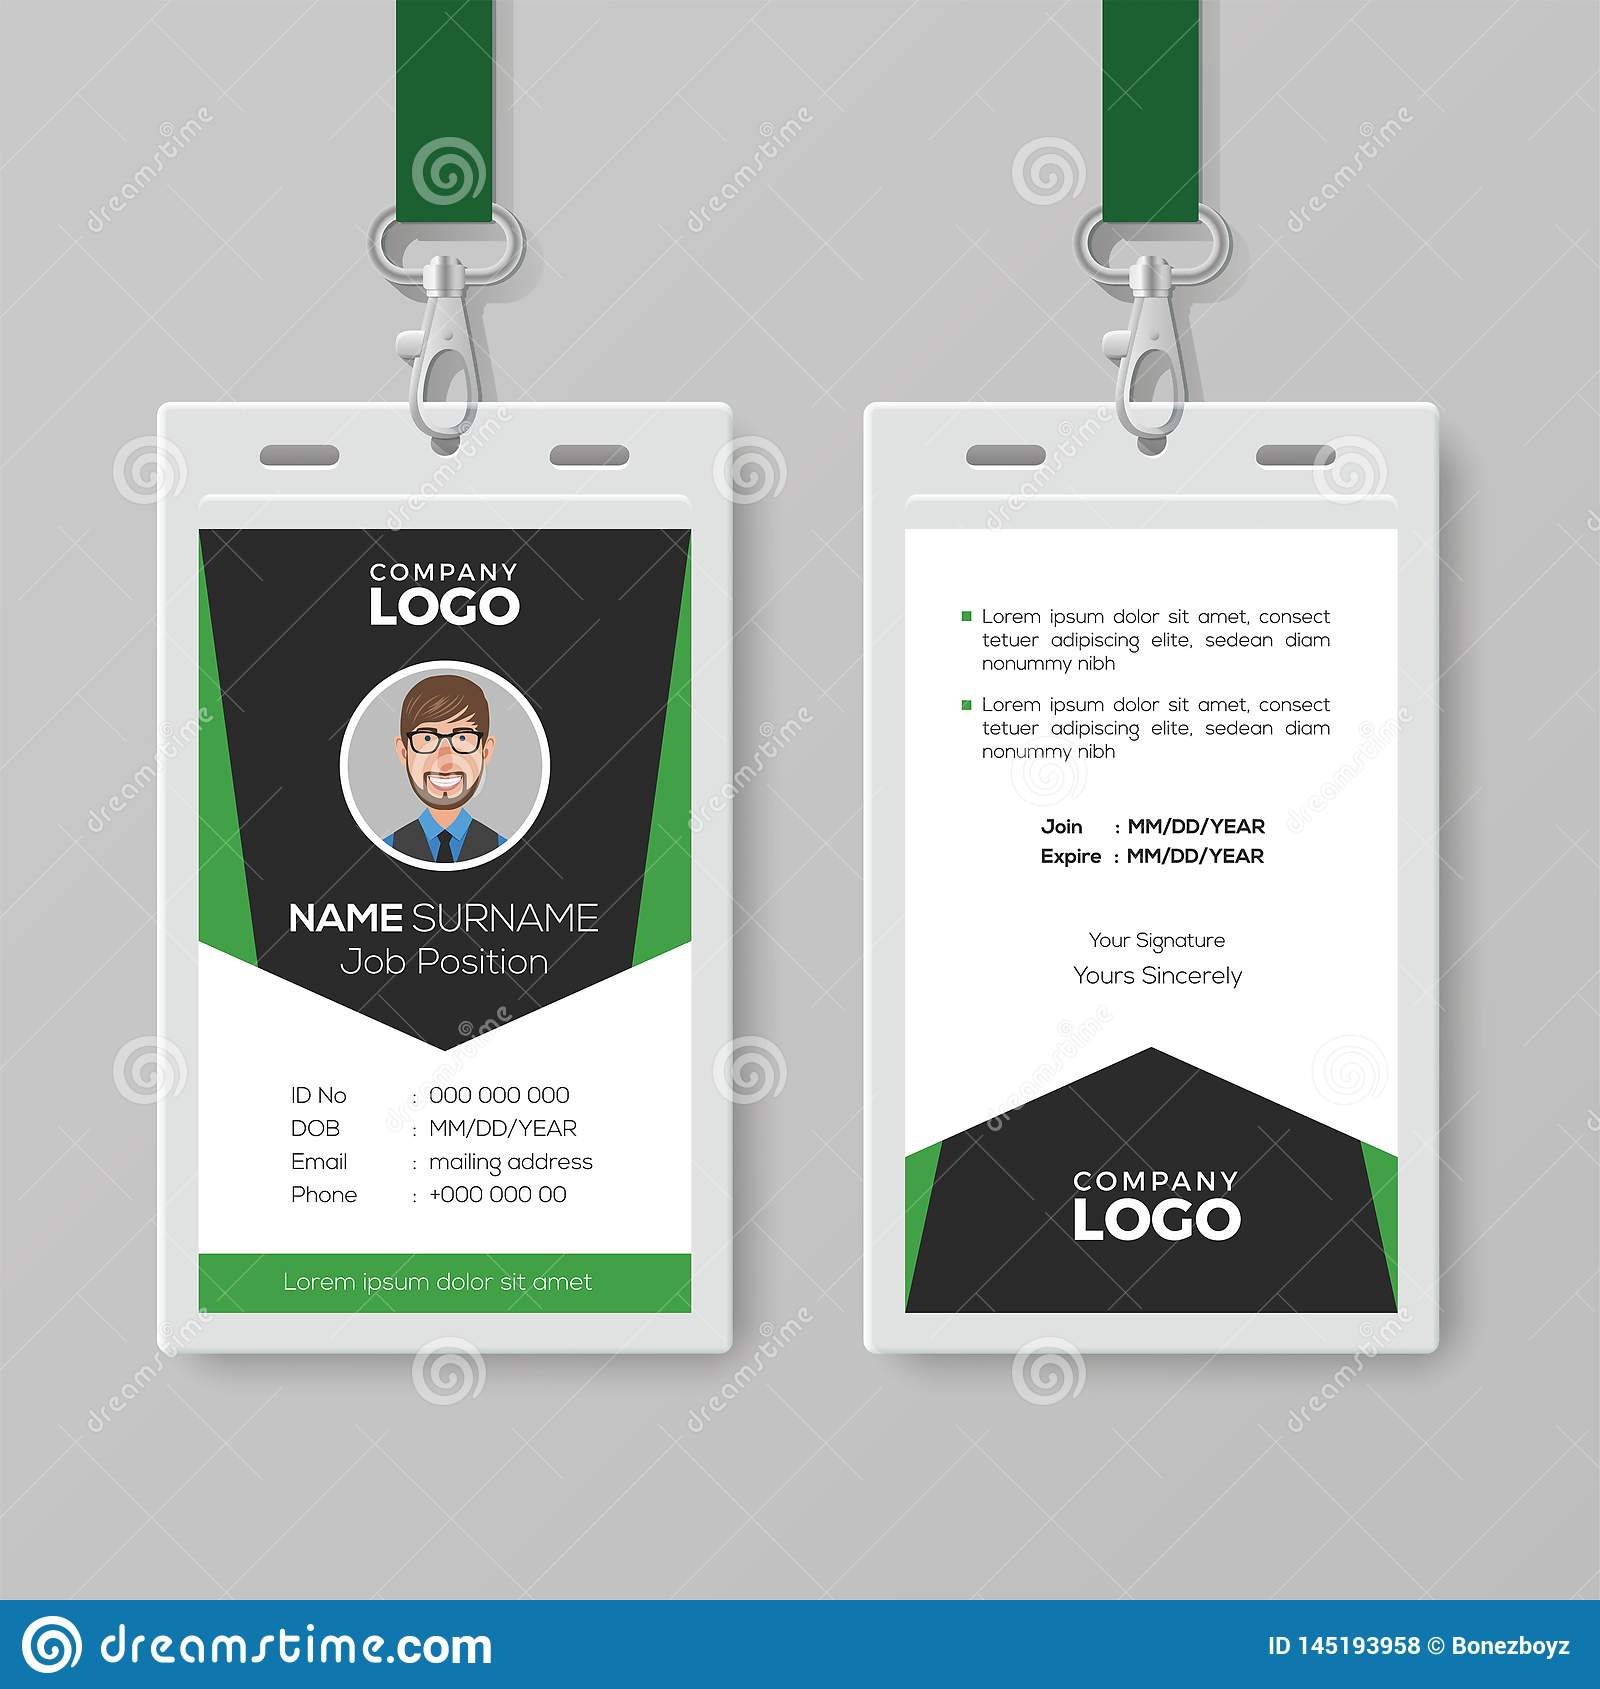 Creative Corporate Id Card Template With Green Details Stock Vector Illustration Of Corporate Contact 145193958